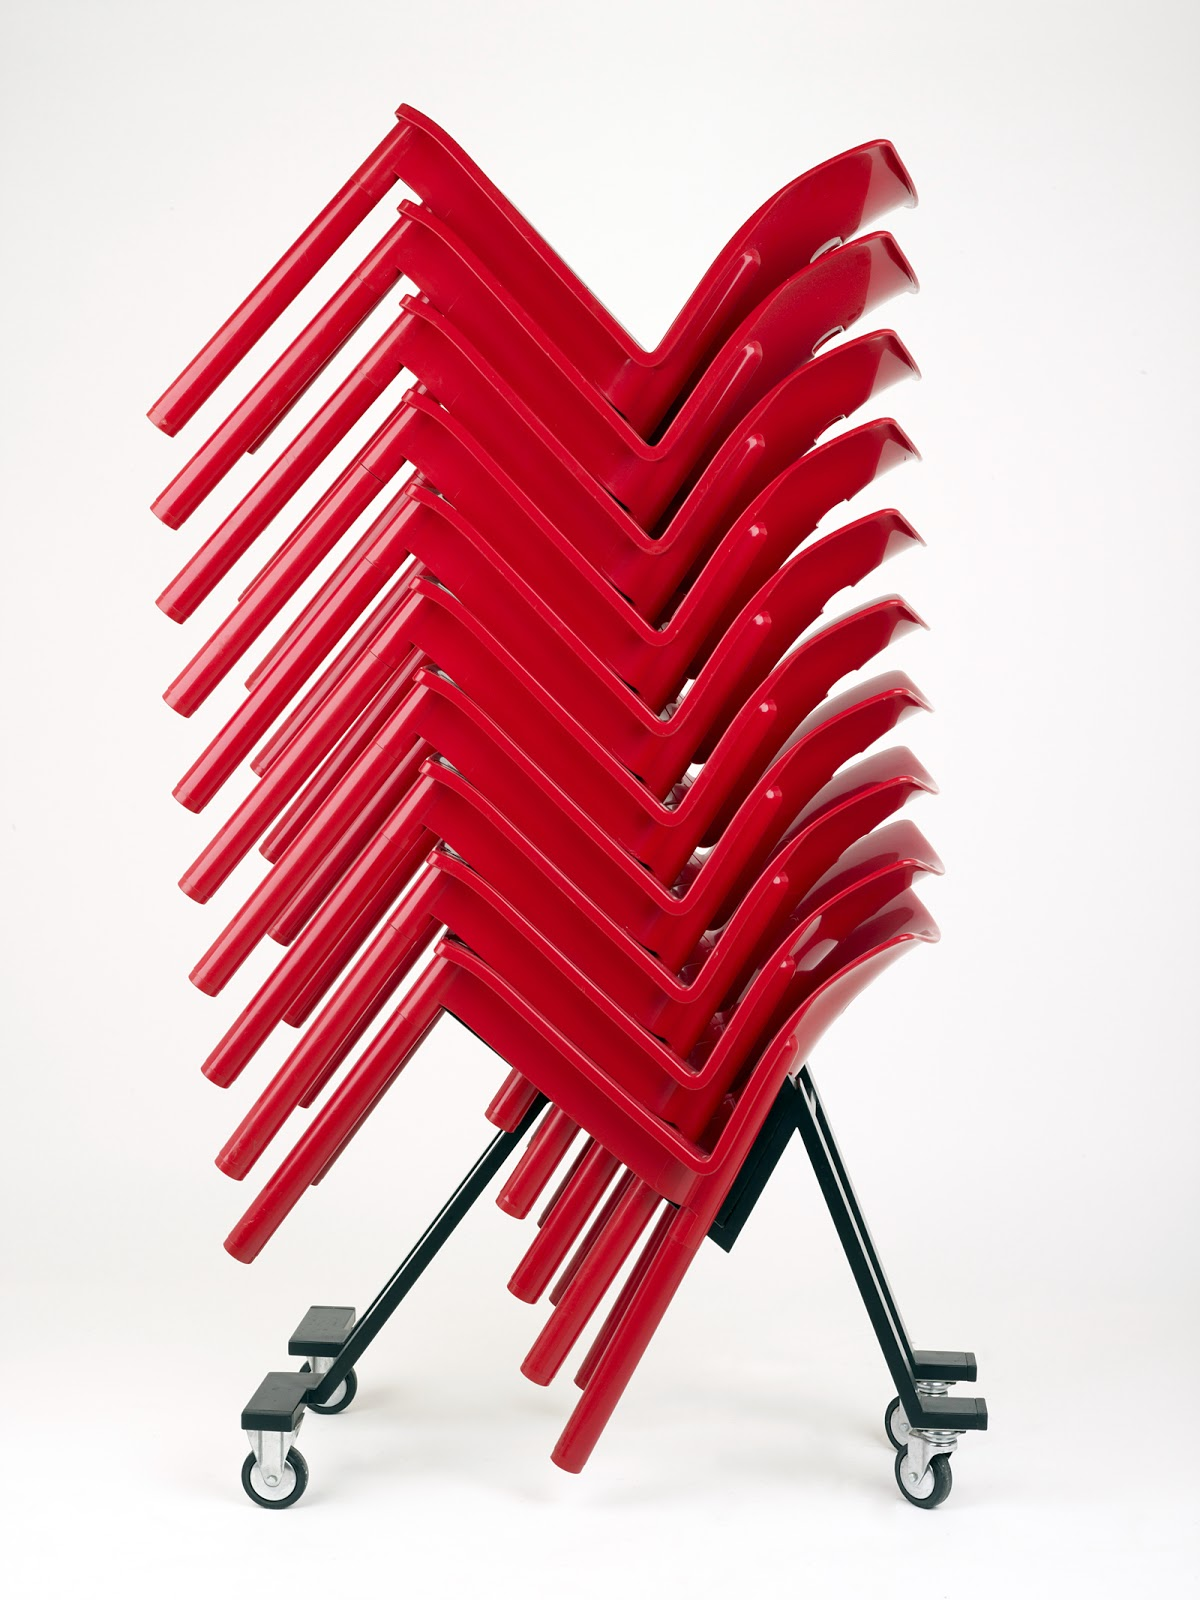 Stacking Chair - Anna Castelli-Ferrieri for Kartell